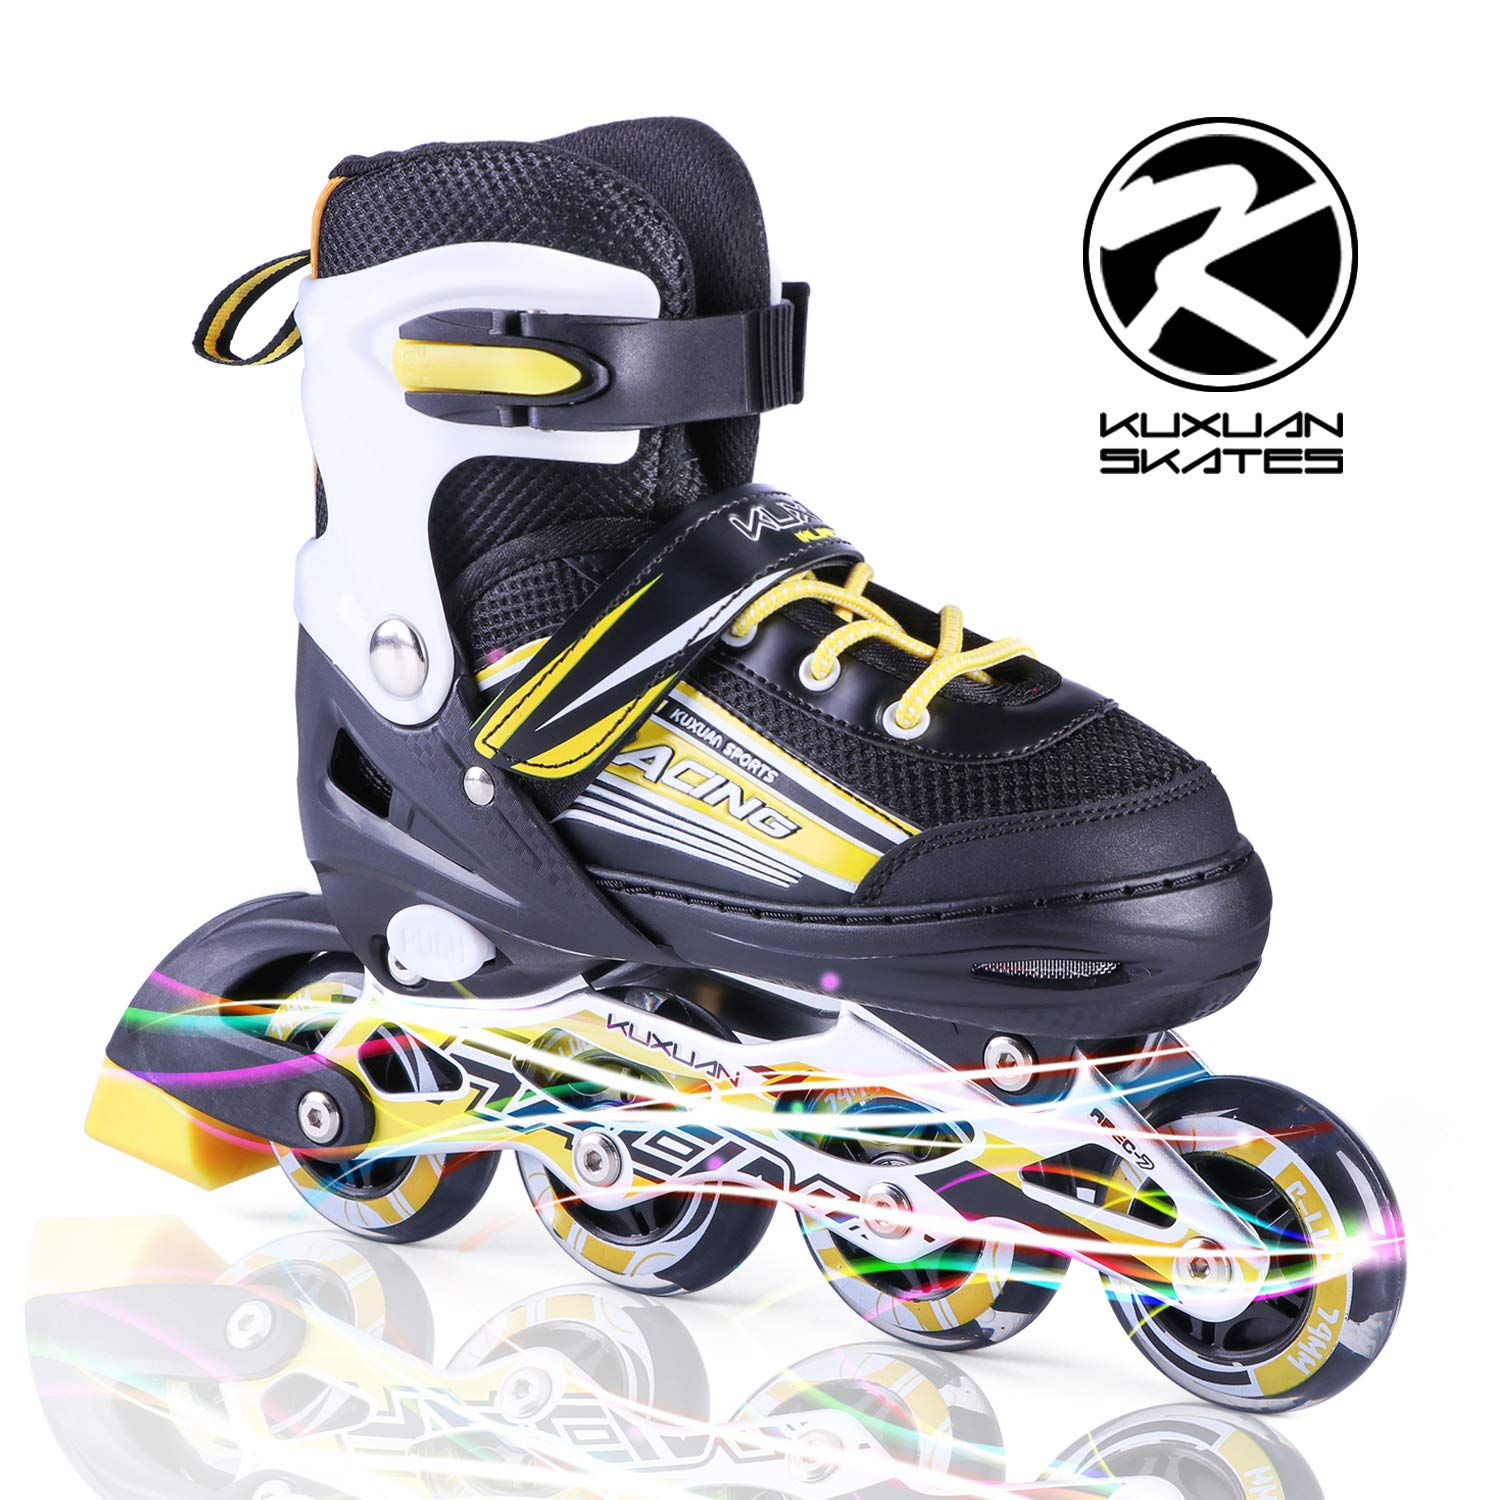 Kuxuan Sayo Inline Skates Adjustable for Kids,Boys Skates with All Wheels Light up,Fun Illuminating for Girls and Youth - Yellow L